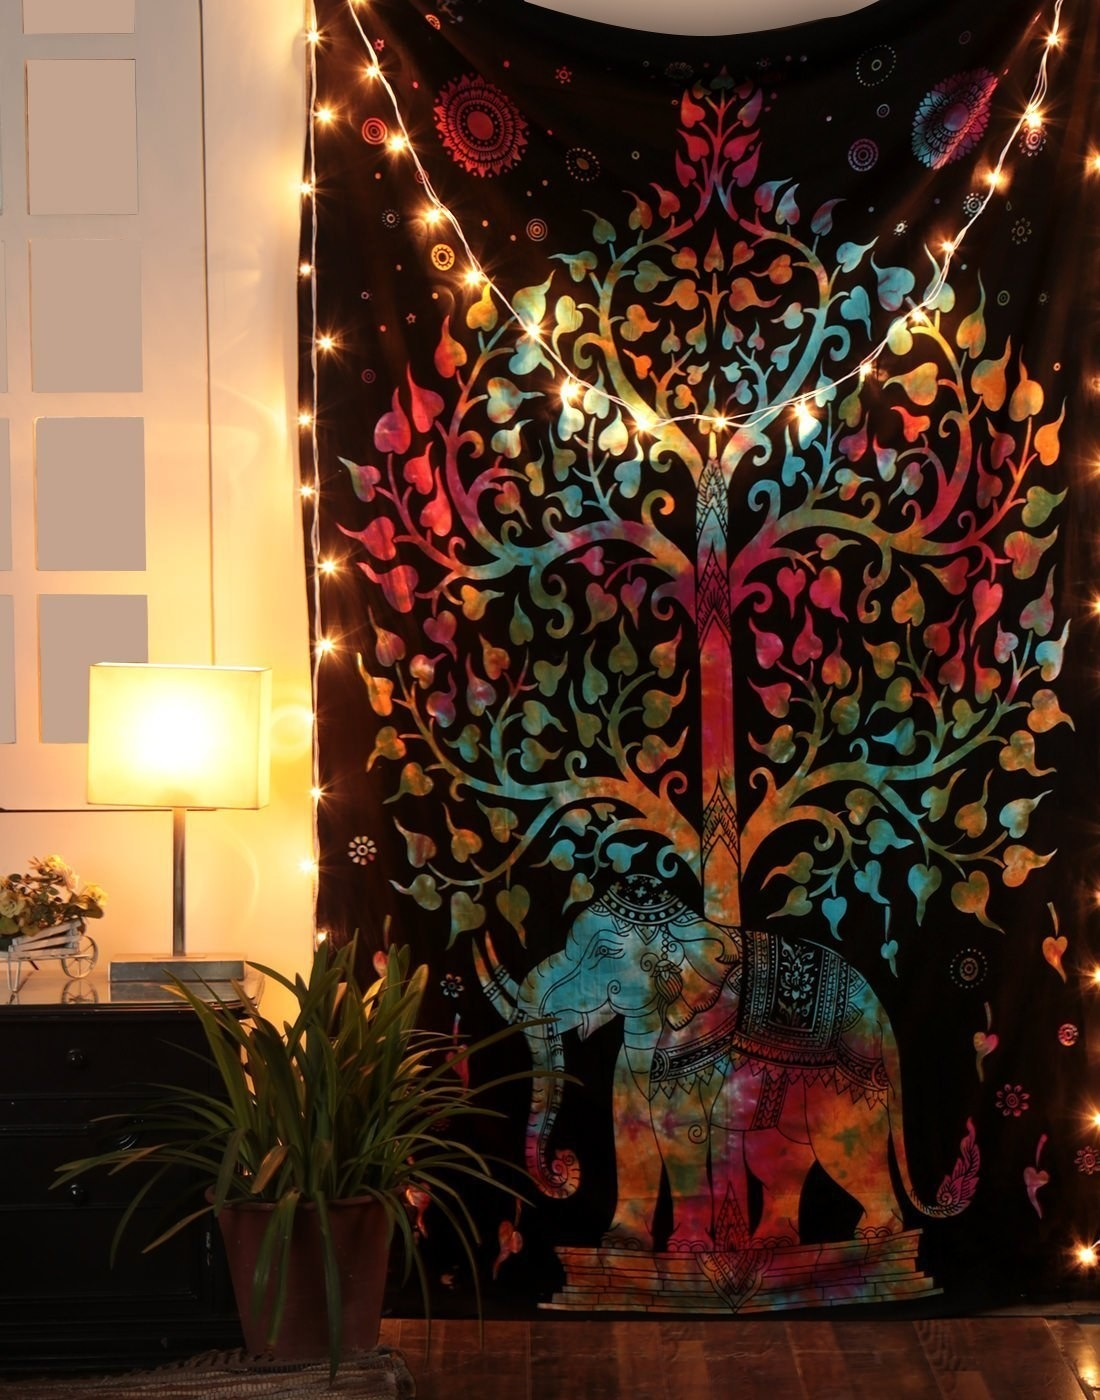 Tapestry with the design of an elephant and a tree, hanging on a wall with string lights decorating its corners.